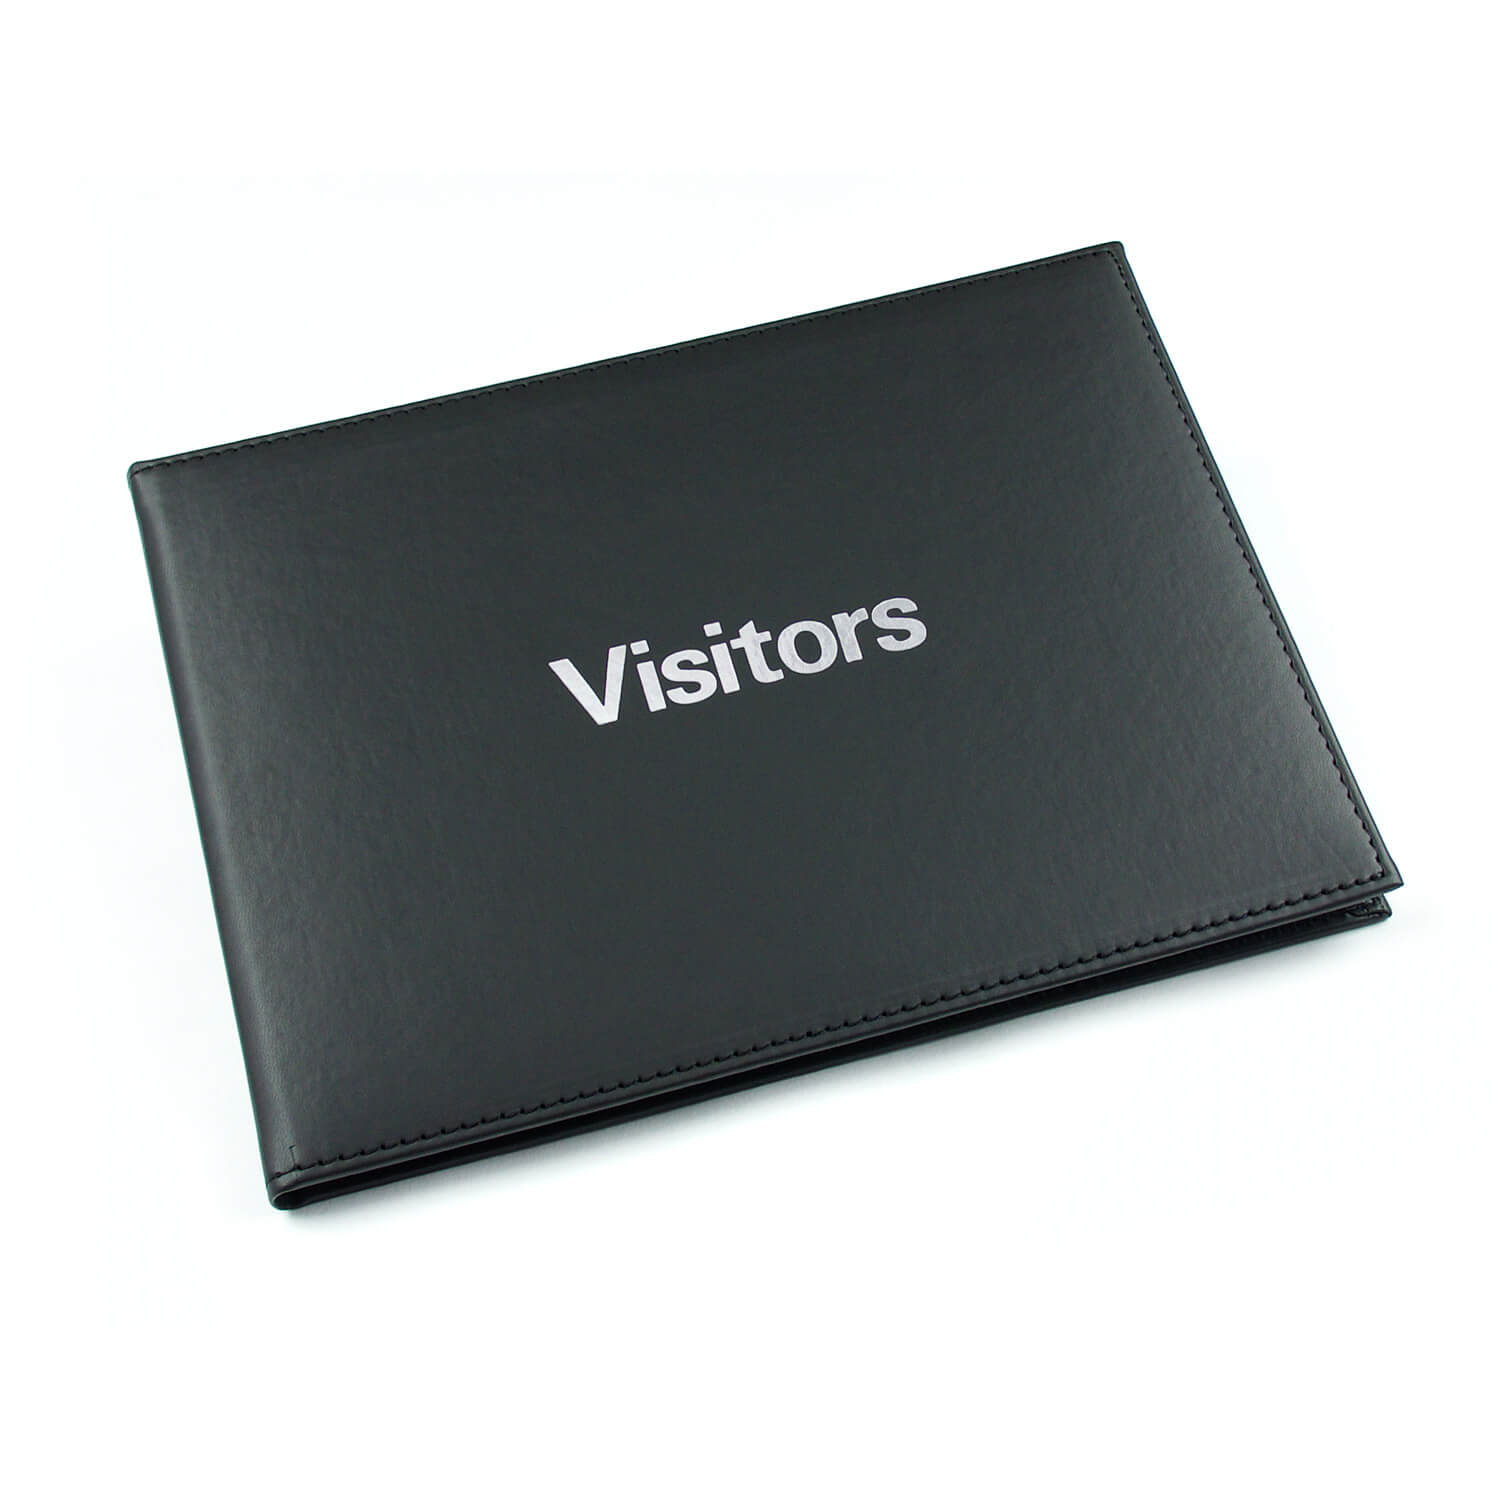 Esposti Visitors Book - PU Leather Cover - 600 Entries - Size 265 x 195mm - Black